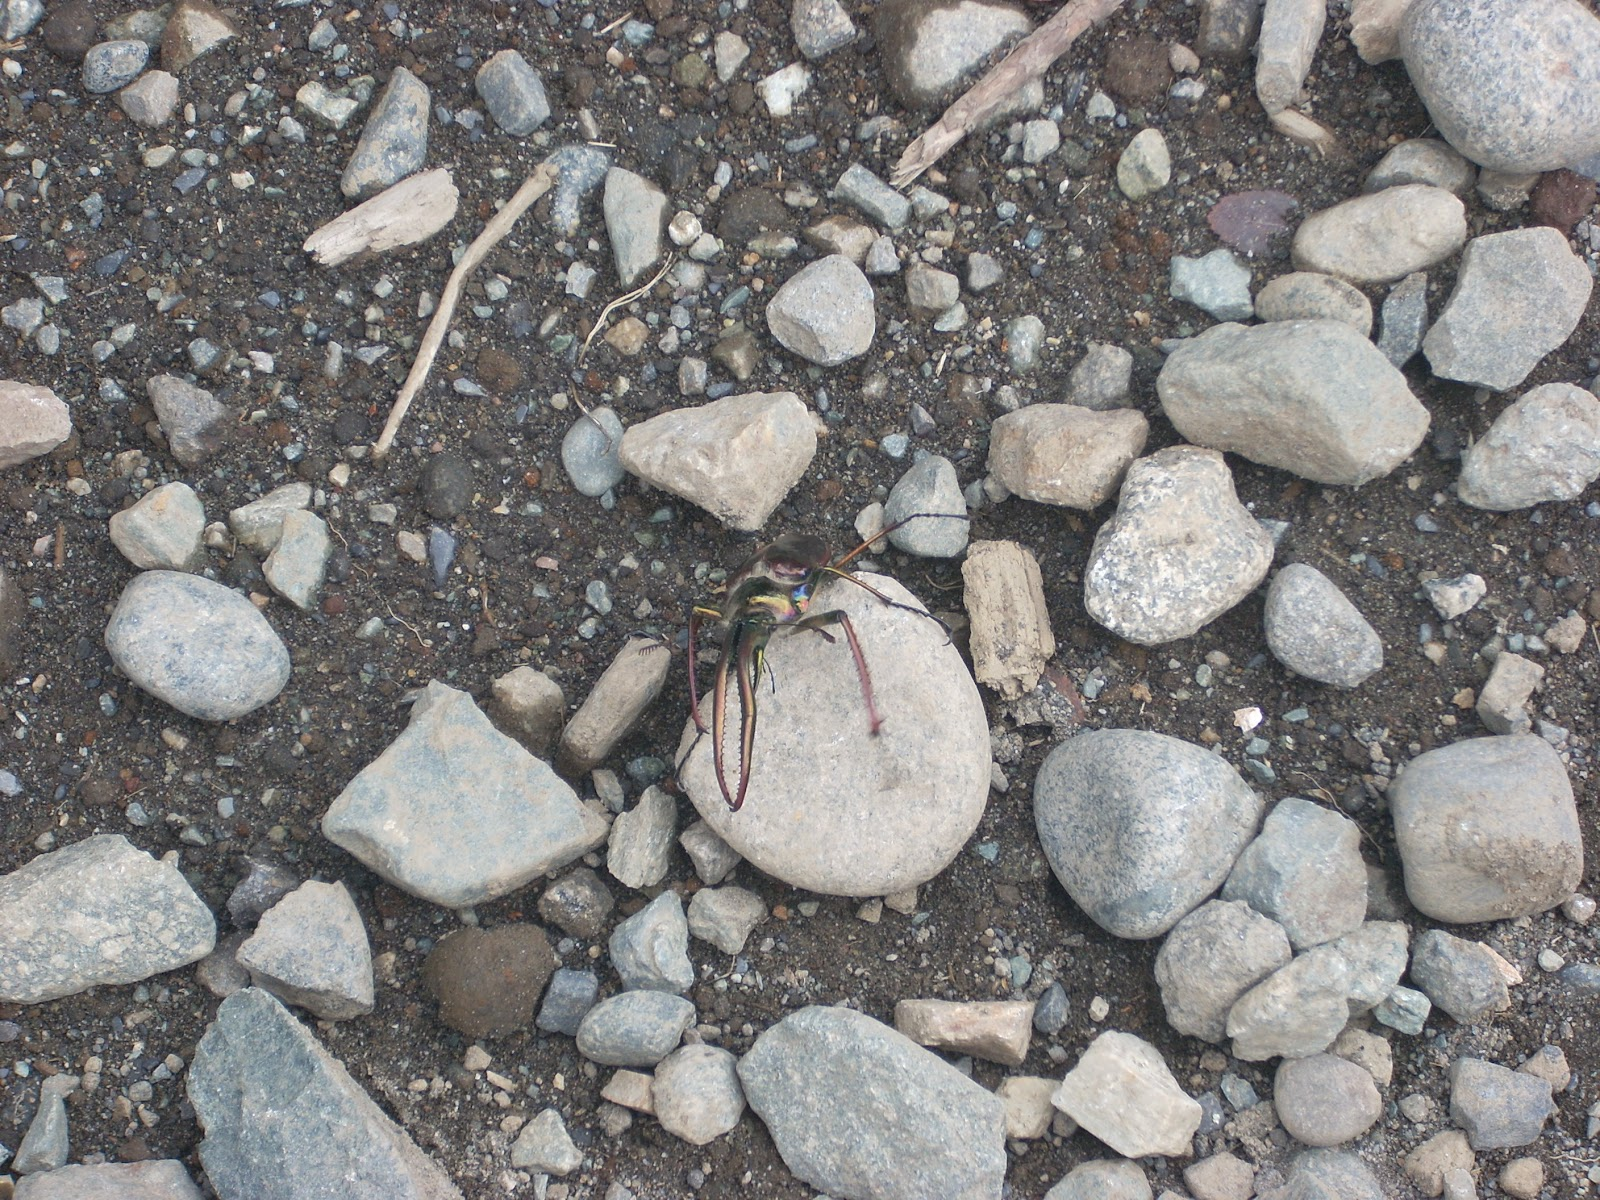 See this bug - it would fill the palm of my hand